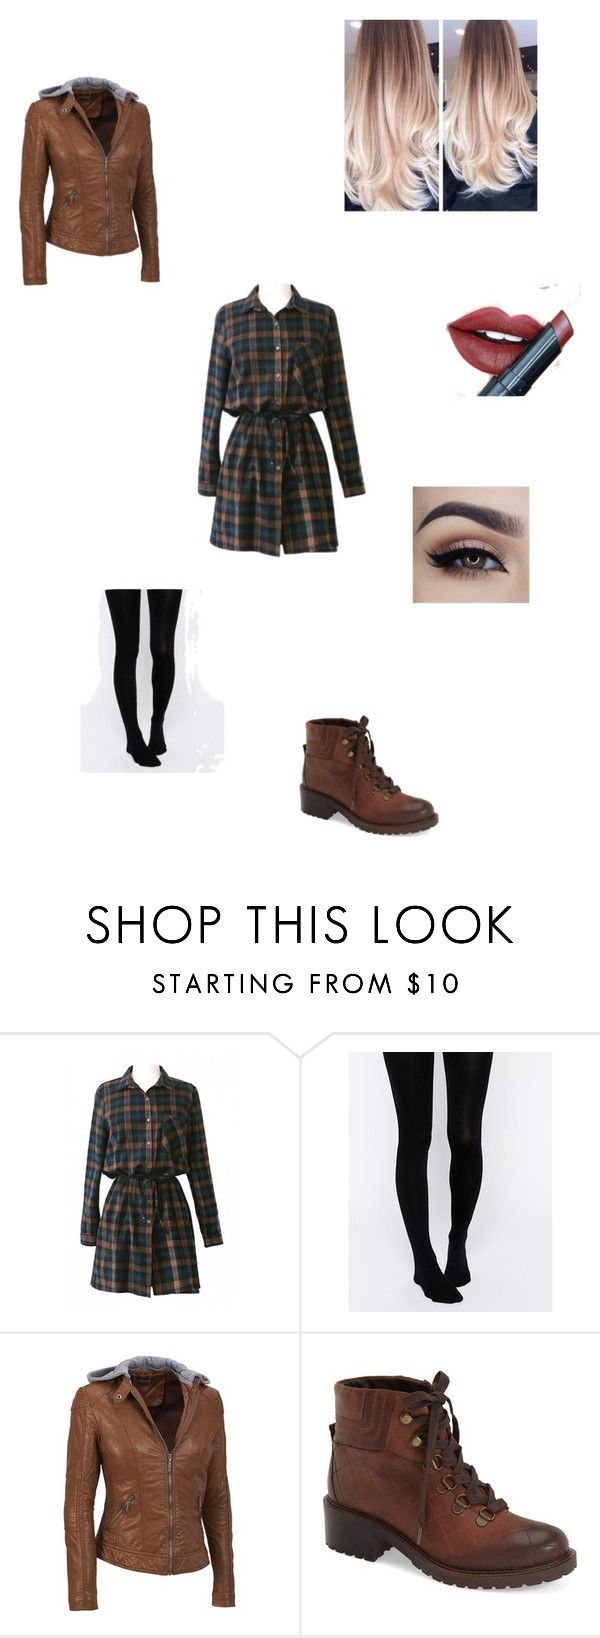 """""""You Meet Johnny"""" by maryvarleyrox ❤ liked on Polyvore featuring mode, ASOS, Coalition LA, Steve Madden, Fiebiger, women's clothing, women, female, woman en misses"""